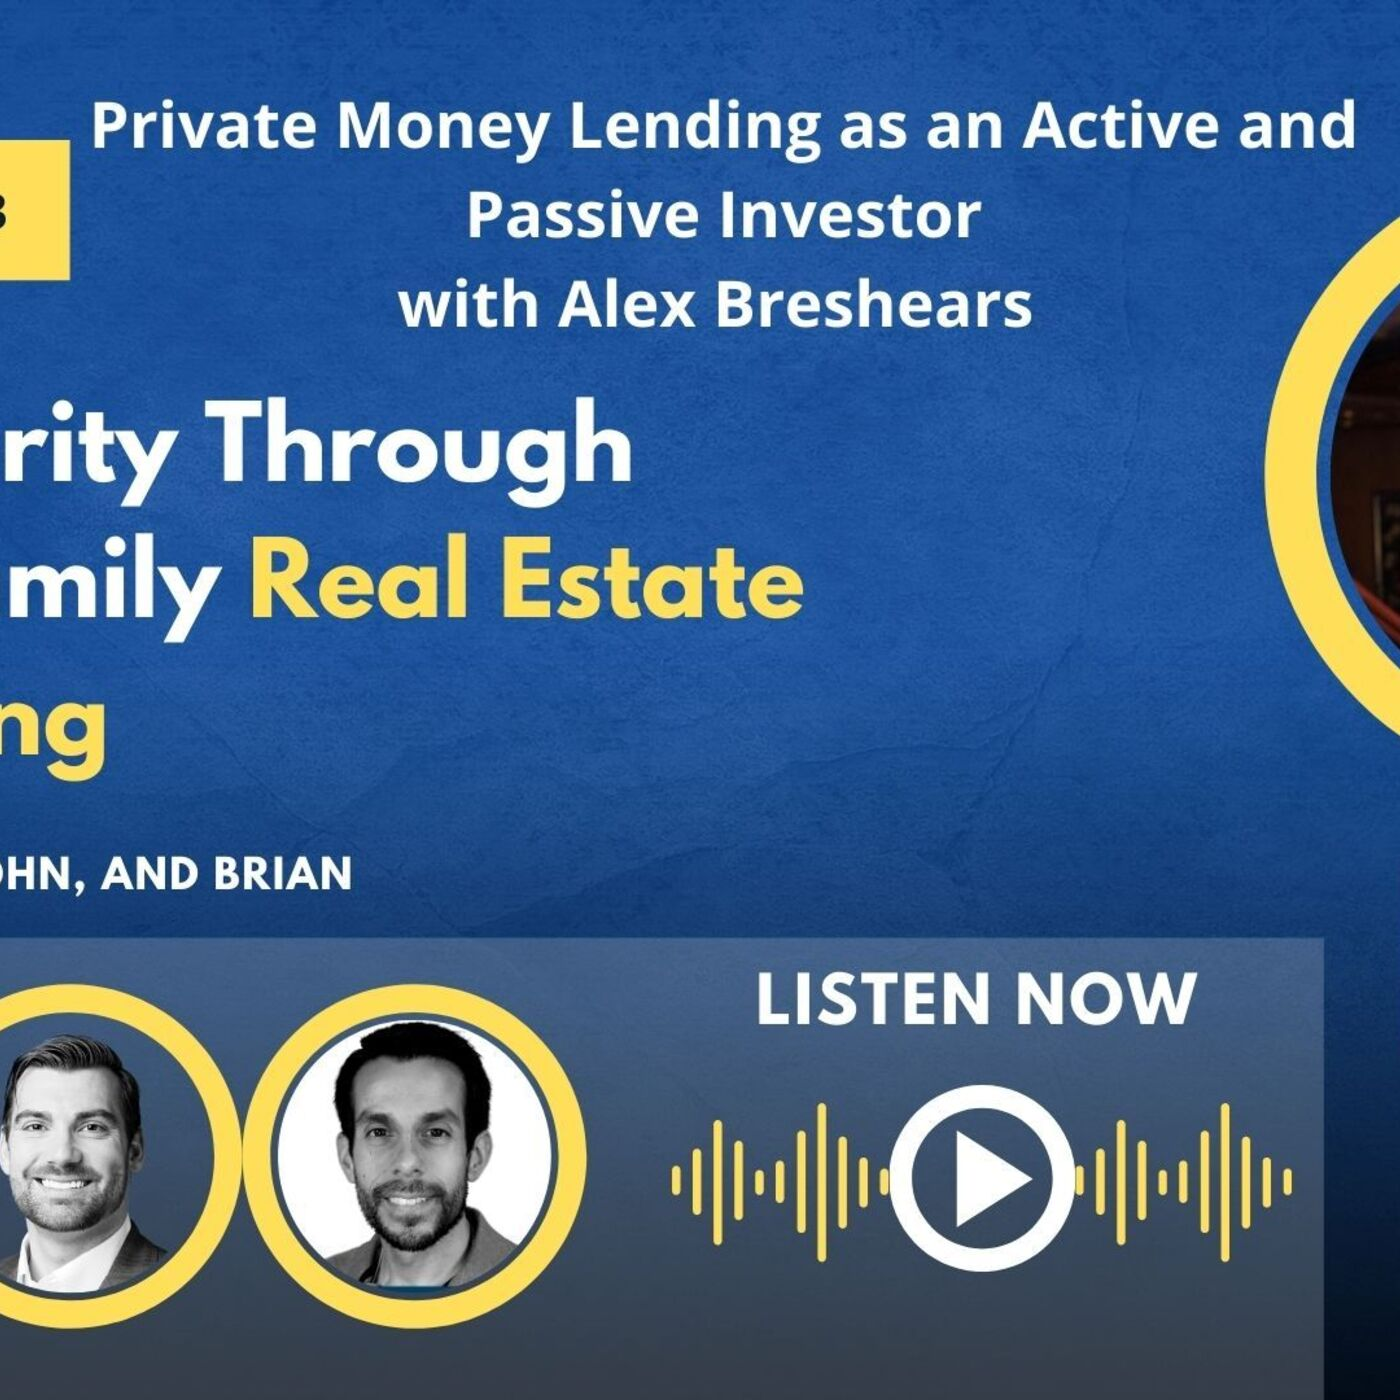 Private Money Lending as an Active and Passive Investor with Alex Breshears